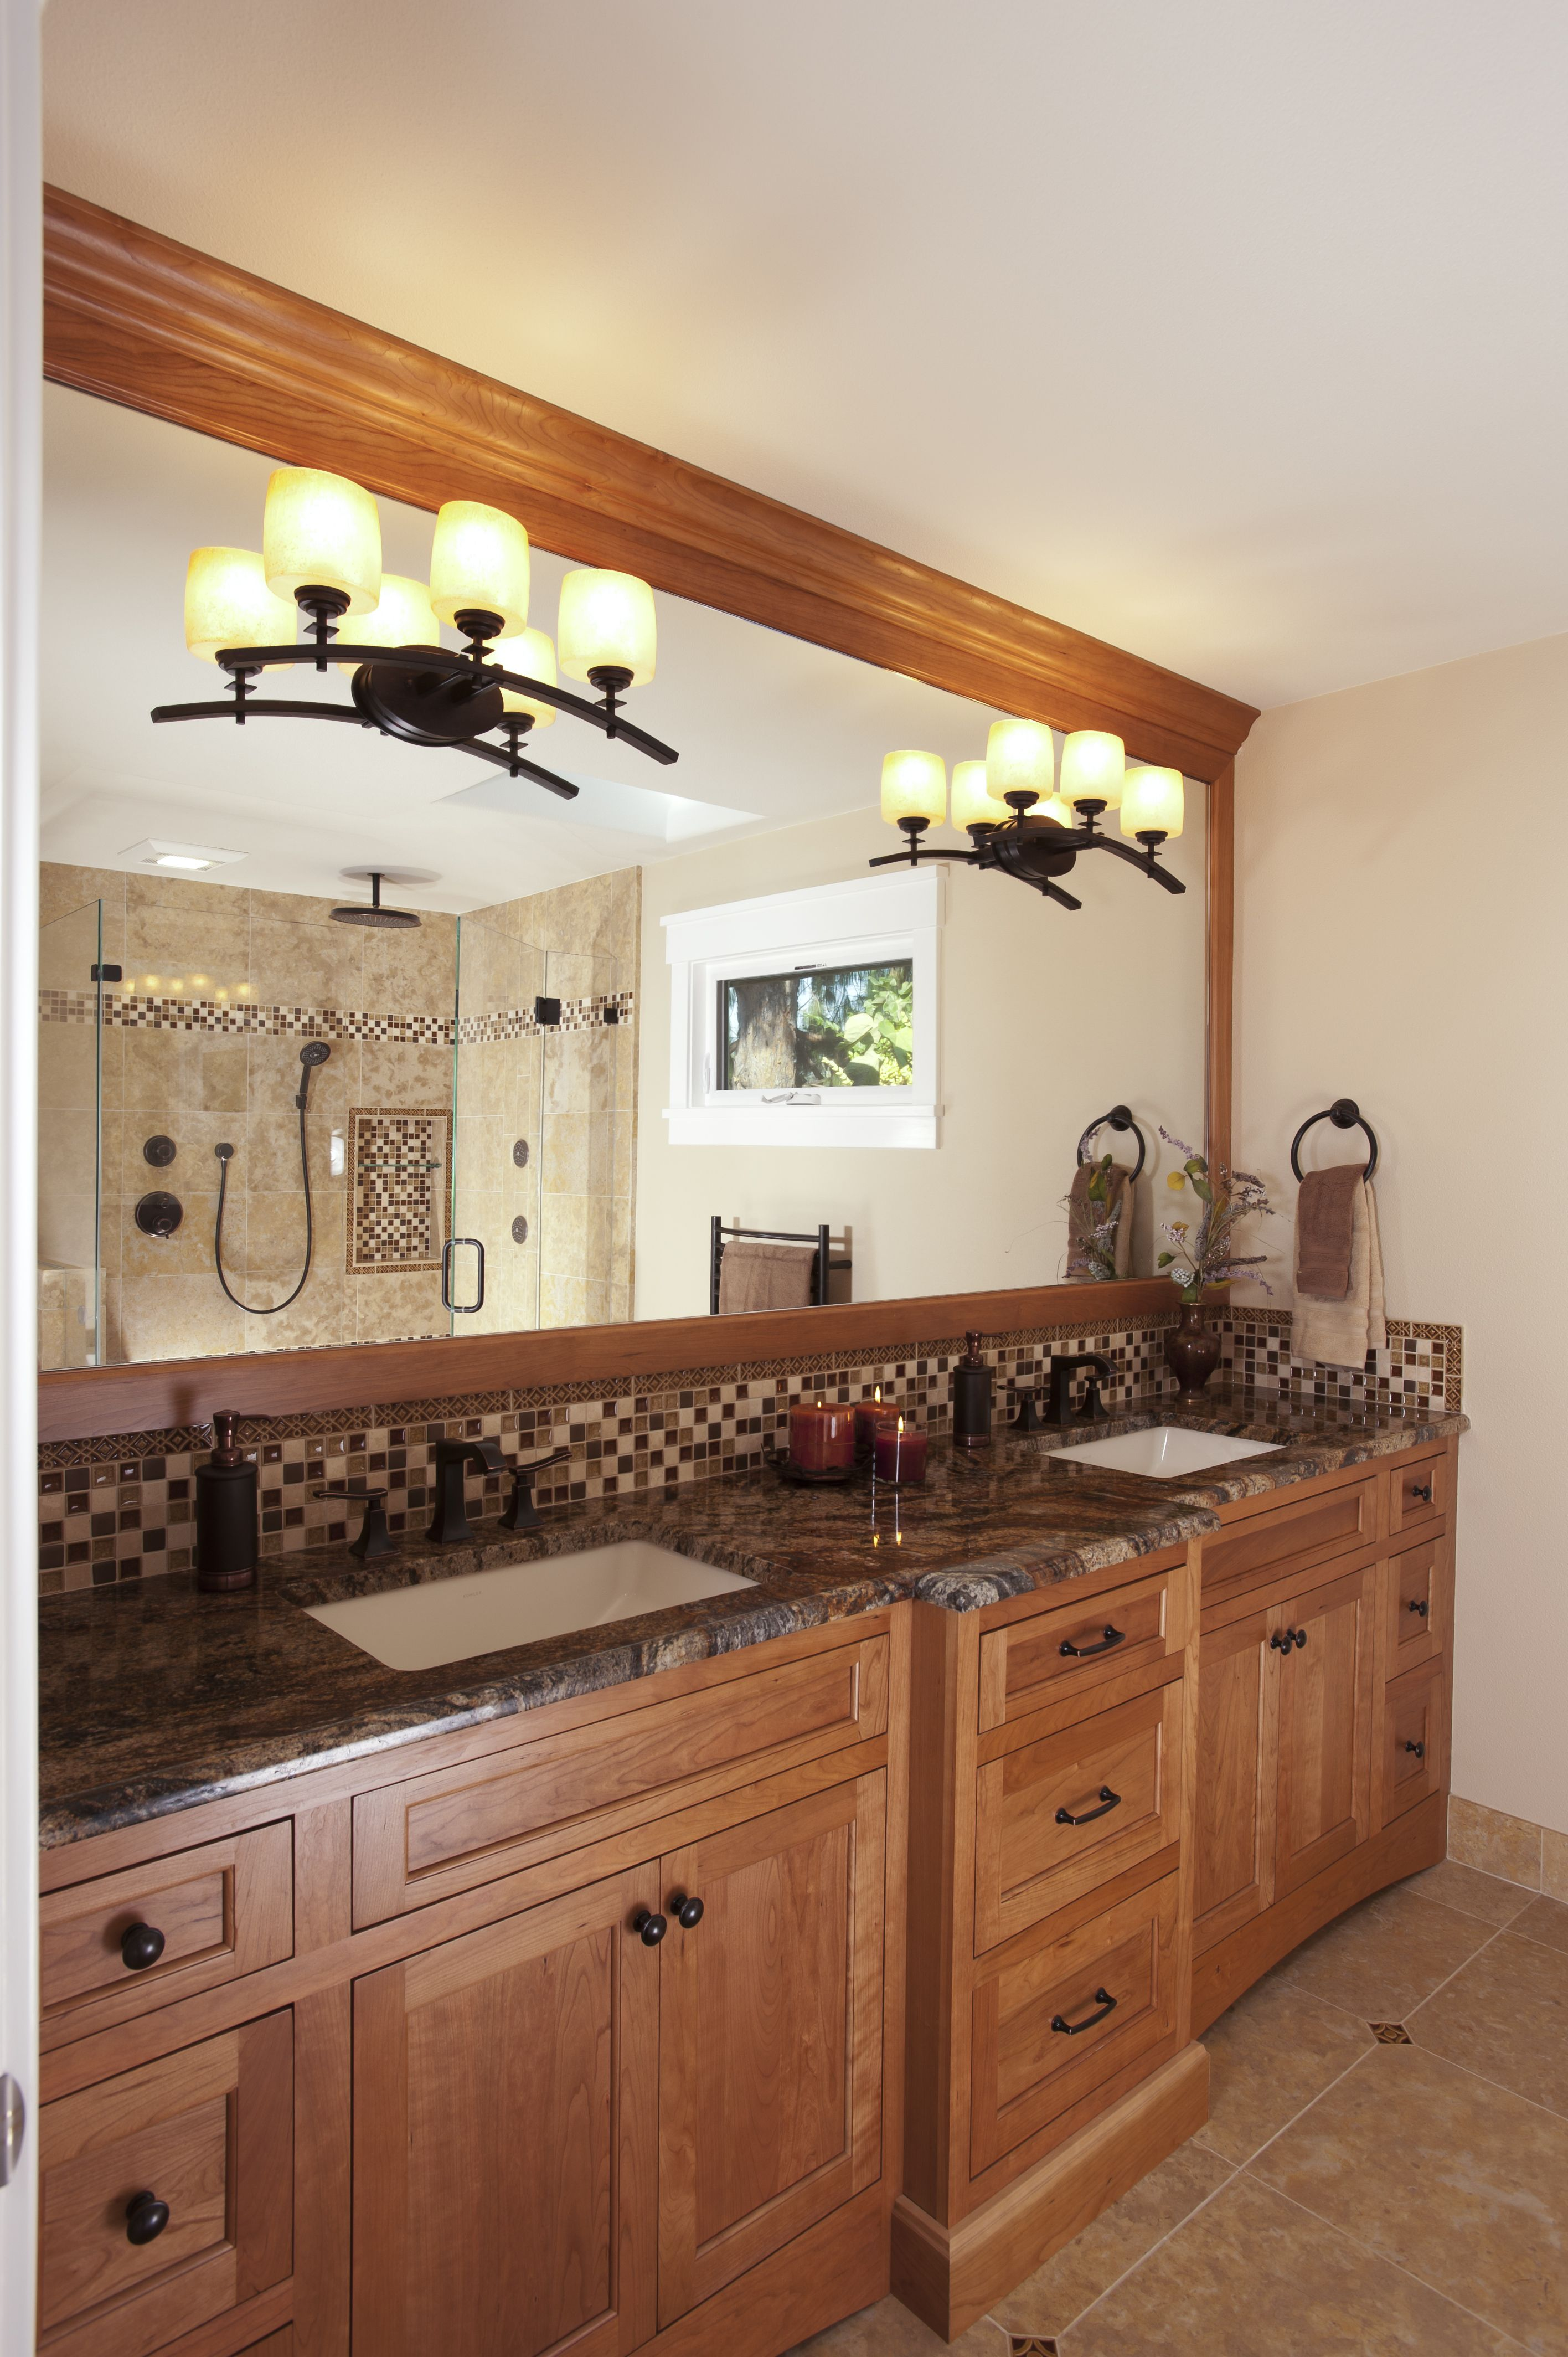 Cabinets dynasty by omega uliano door in cherry wood and wheat finish custom mirror frame for Omega bathroom vanity cabinet